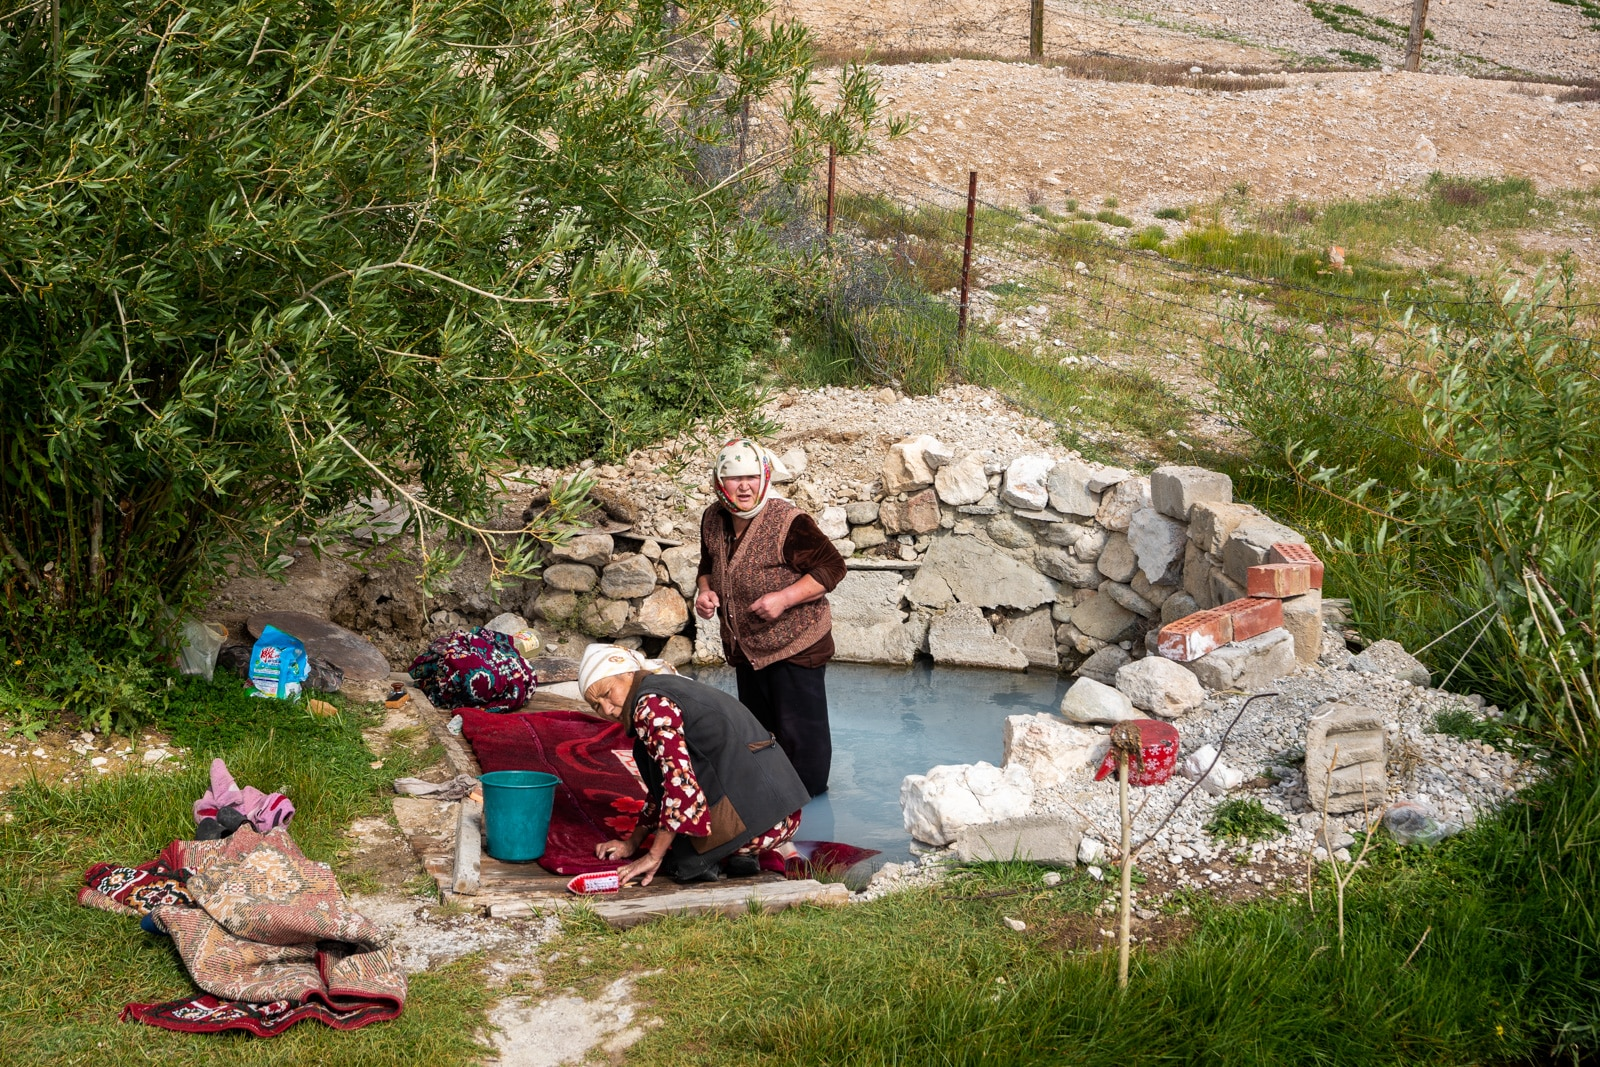 Women washing clothes in a fish pond in Shaimak Village, Pamir Mountains, Tajikistan